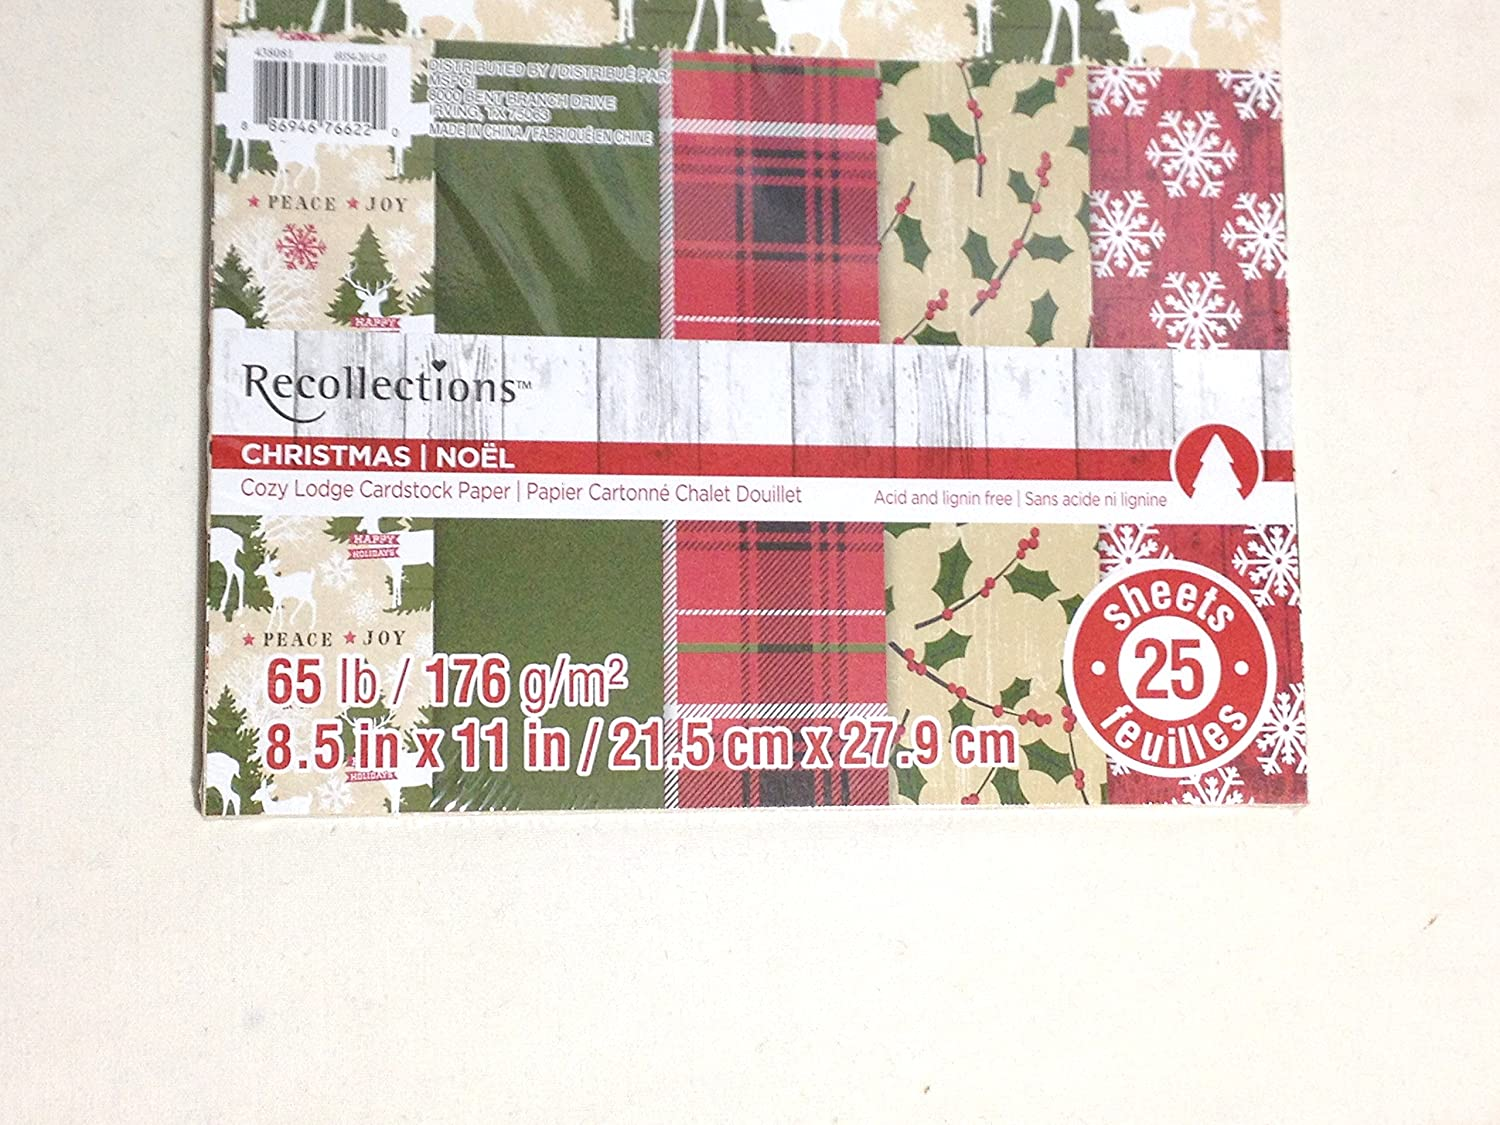 Amazon.com : Recollections Christmas Holiday Cozy Lodge Cardstock ...